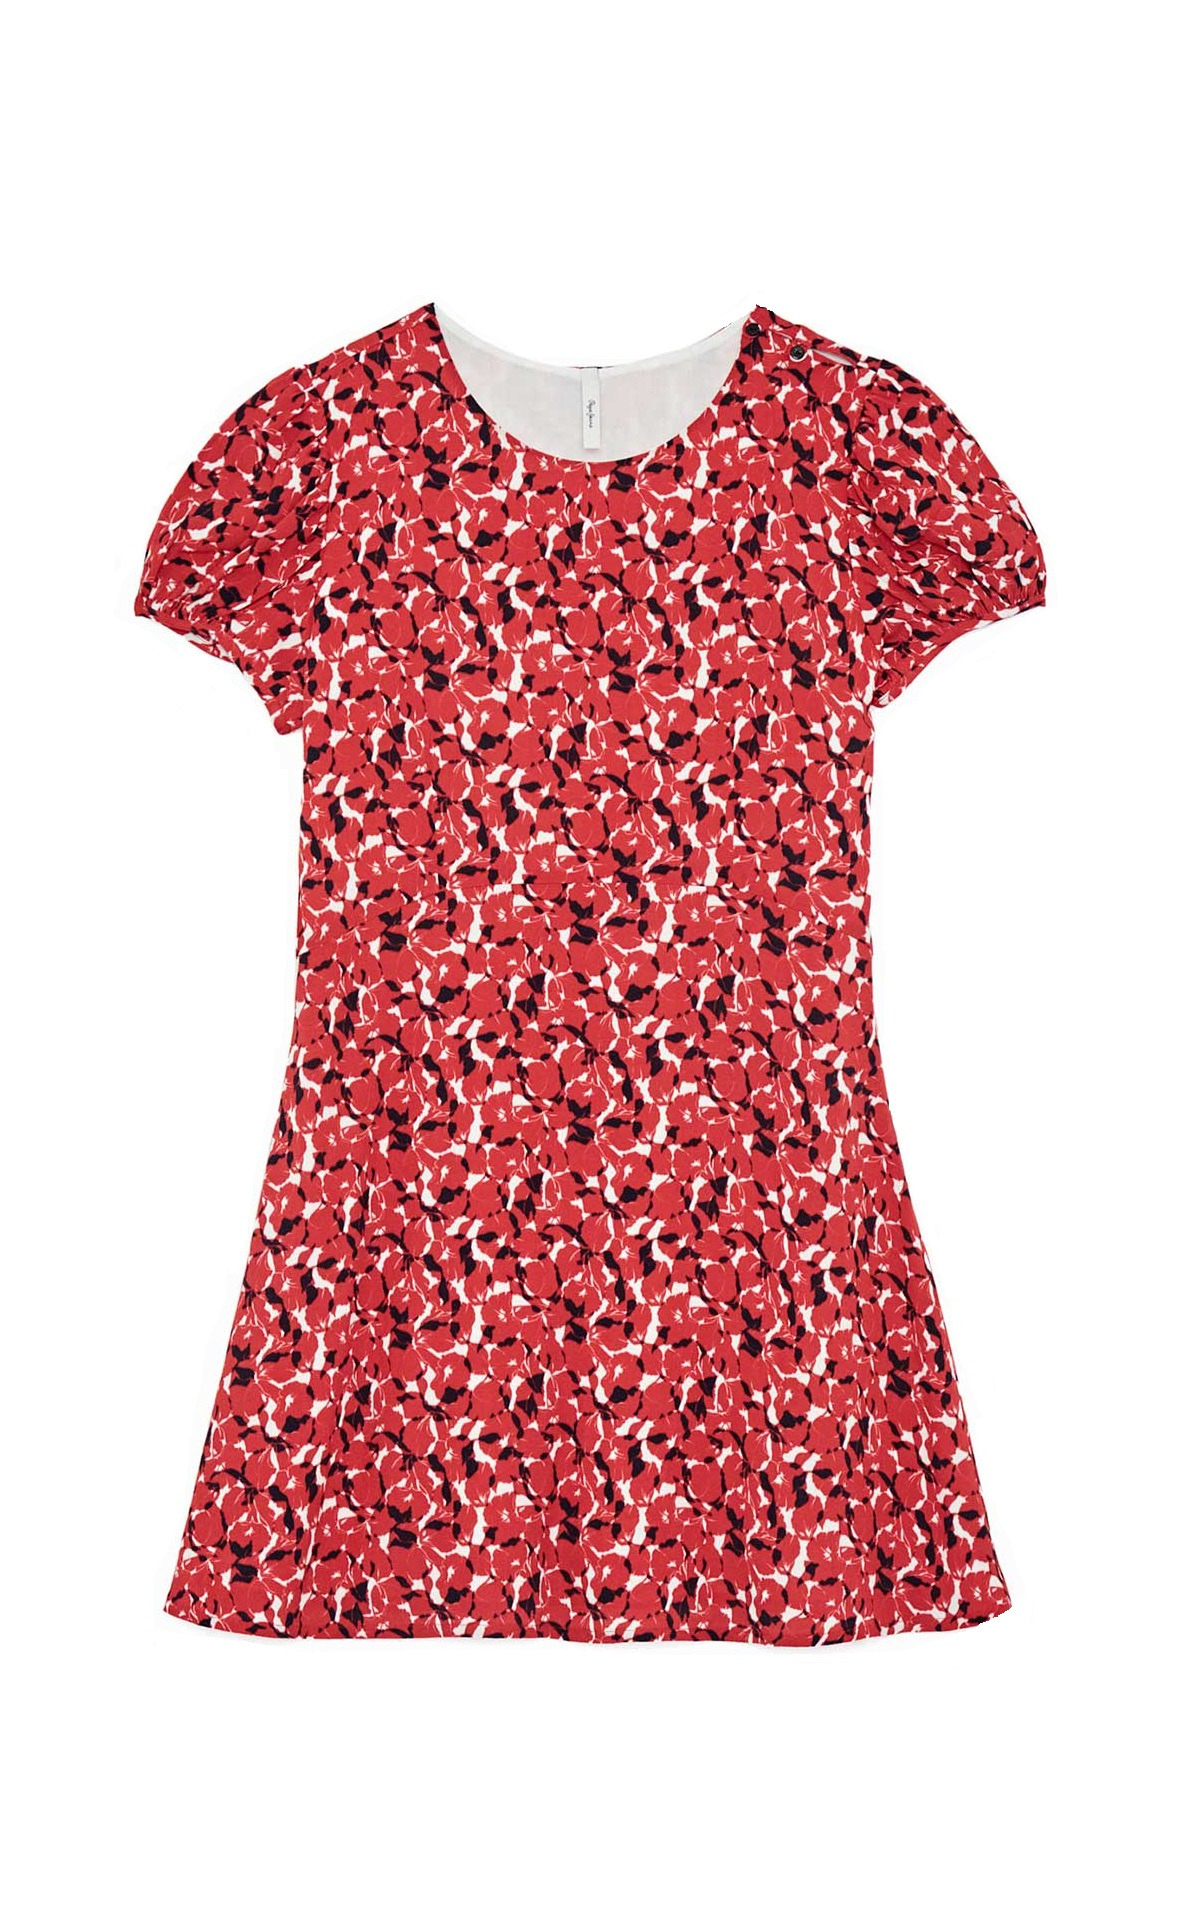 Red flowered dress Dua Lipa x Pepe Jeans